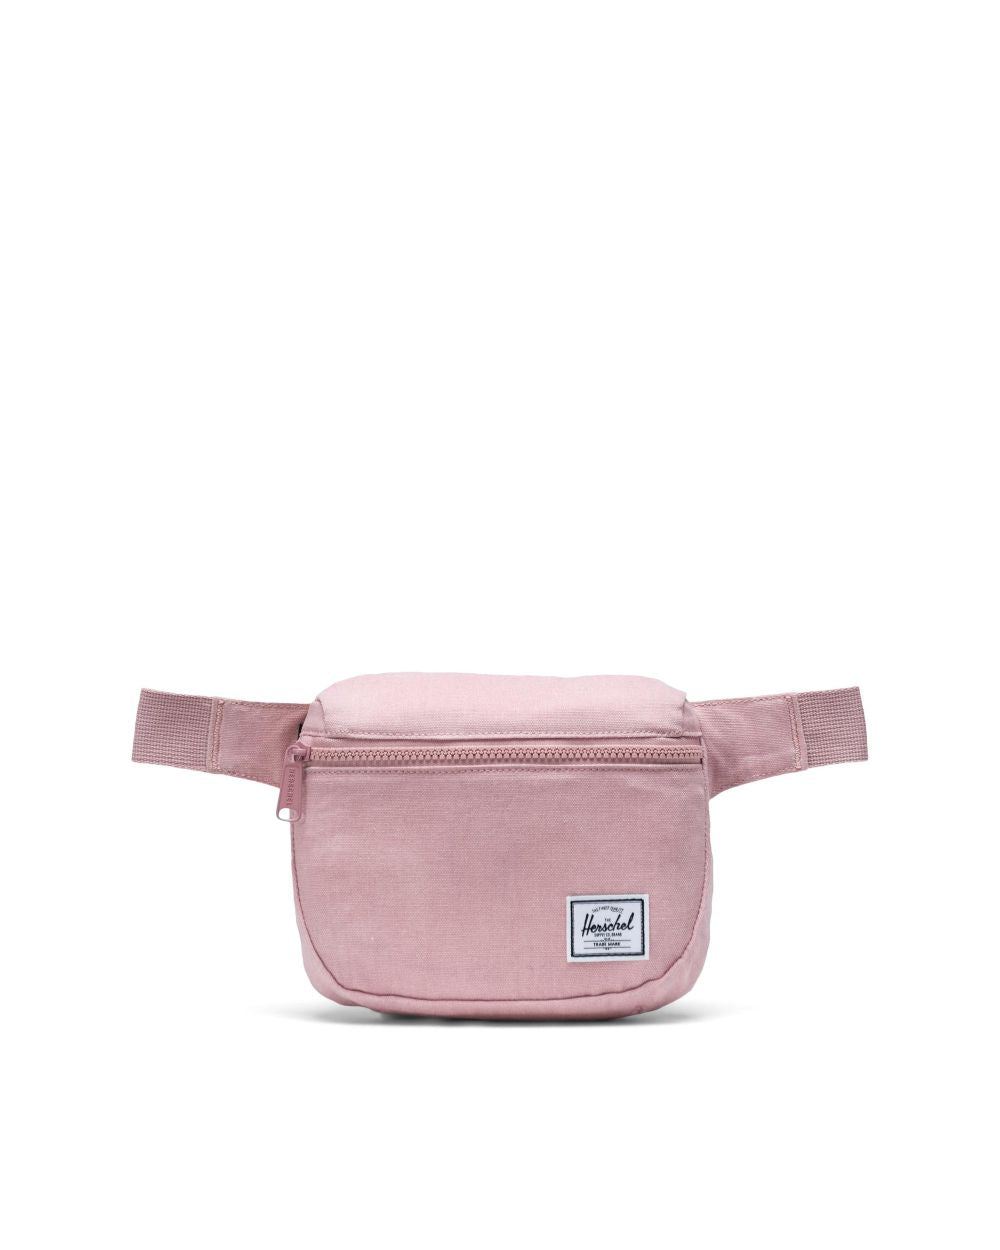 FIFTEEN HIP PACK - PALE MAUVE